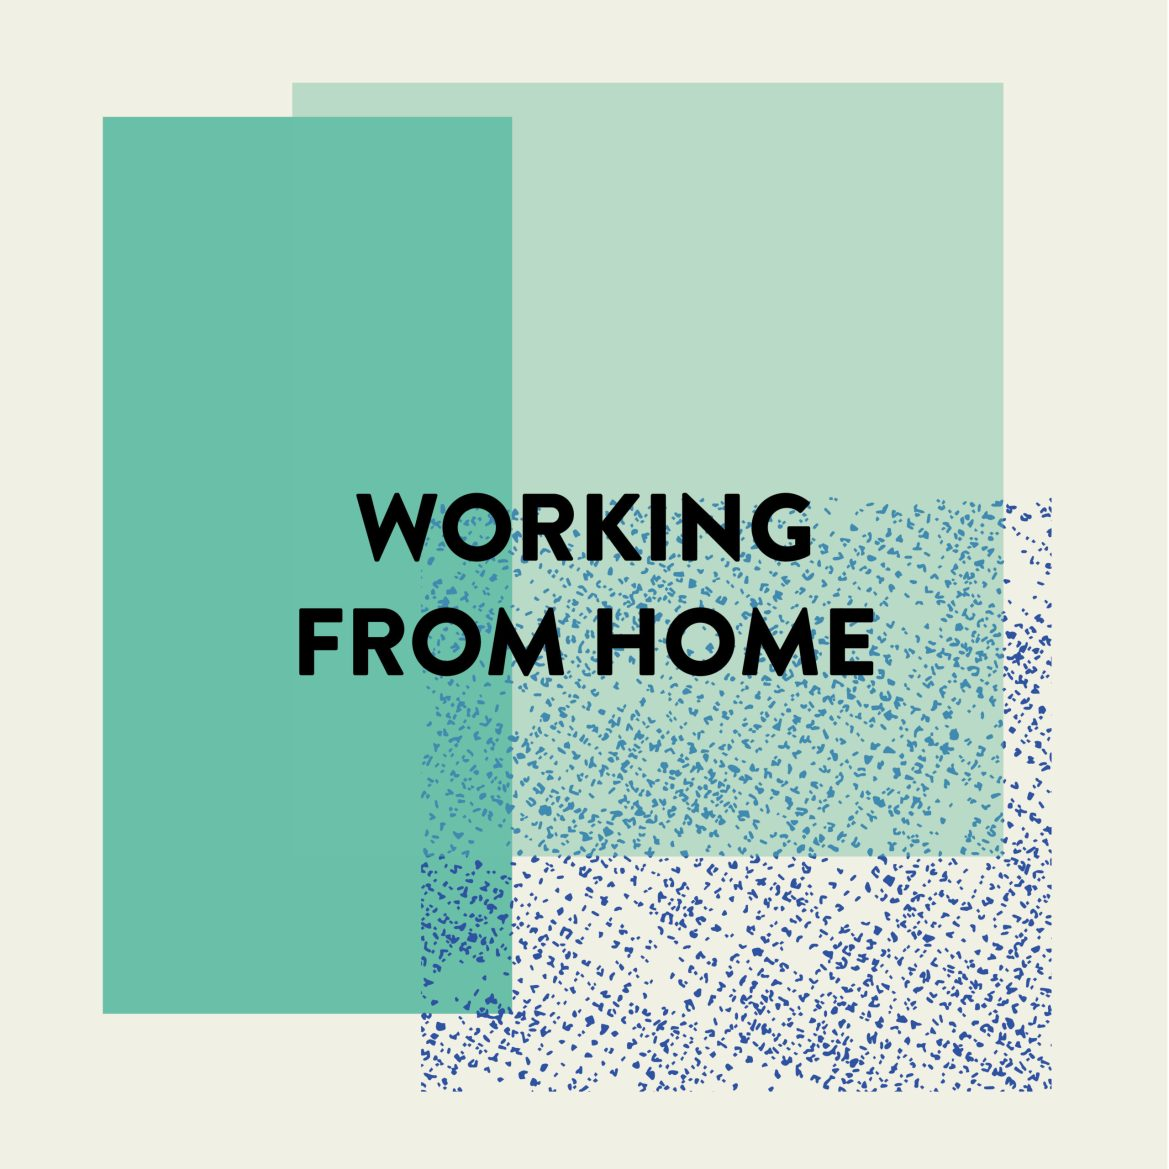 GETTING TO KNOW OUR STAFF WORKING FROM HOME